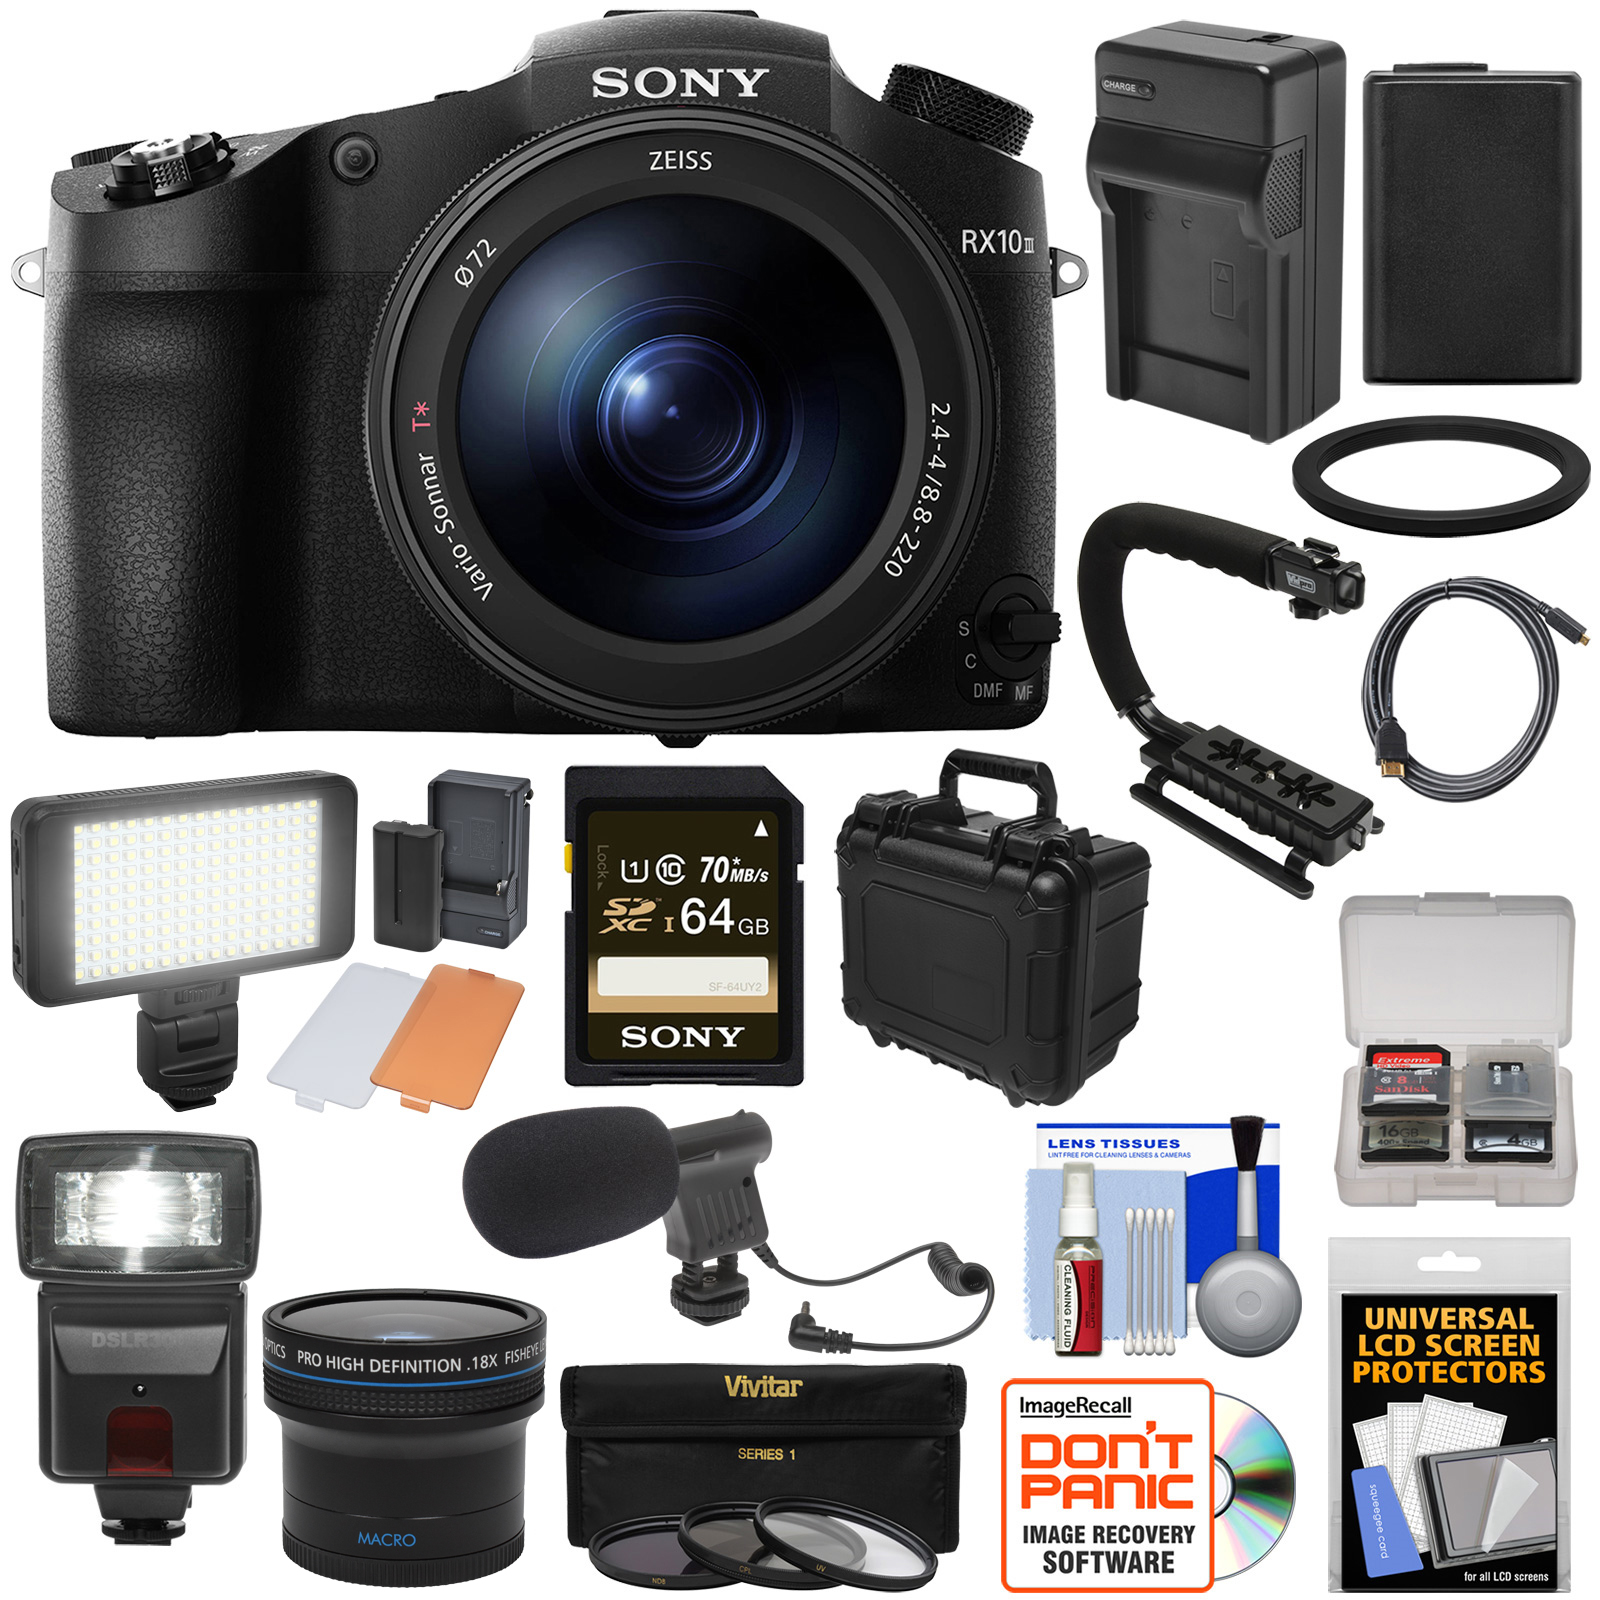 Sony Cyber-Shot DSC-RX10 III 4K Wi-Fi Digital Camera + 64GB Card + Battery & Charger + Hard Case + Stabilizer + Flash + LED Light + Microphone + Fisheye Lens Kit